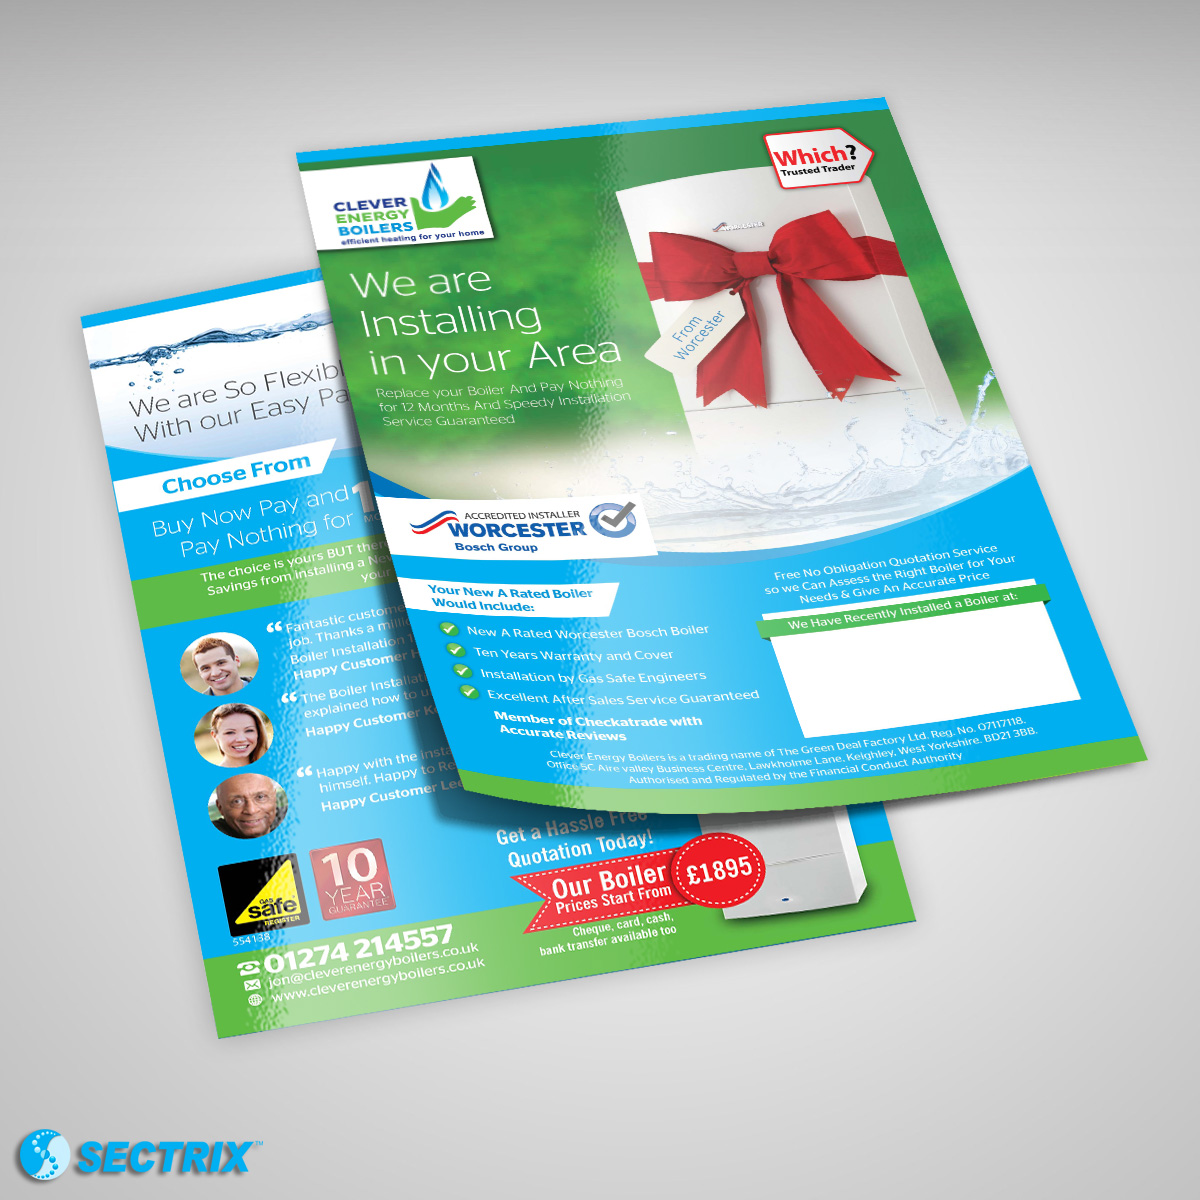 Clever Energy Boilers Flyer   SECTRIX - Graphic Design Services   IT ...